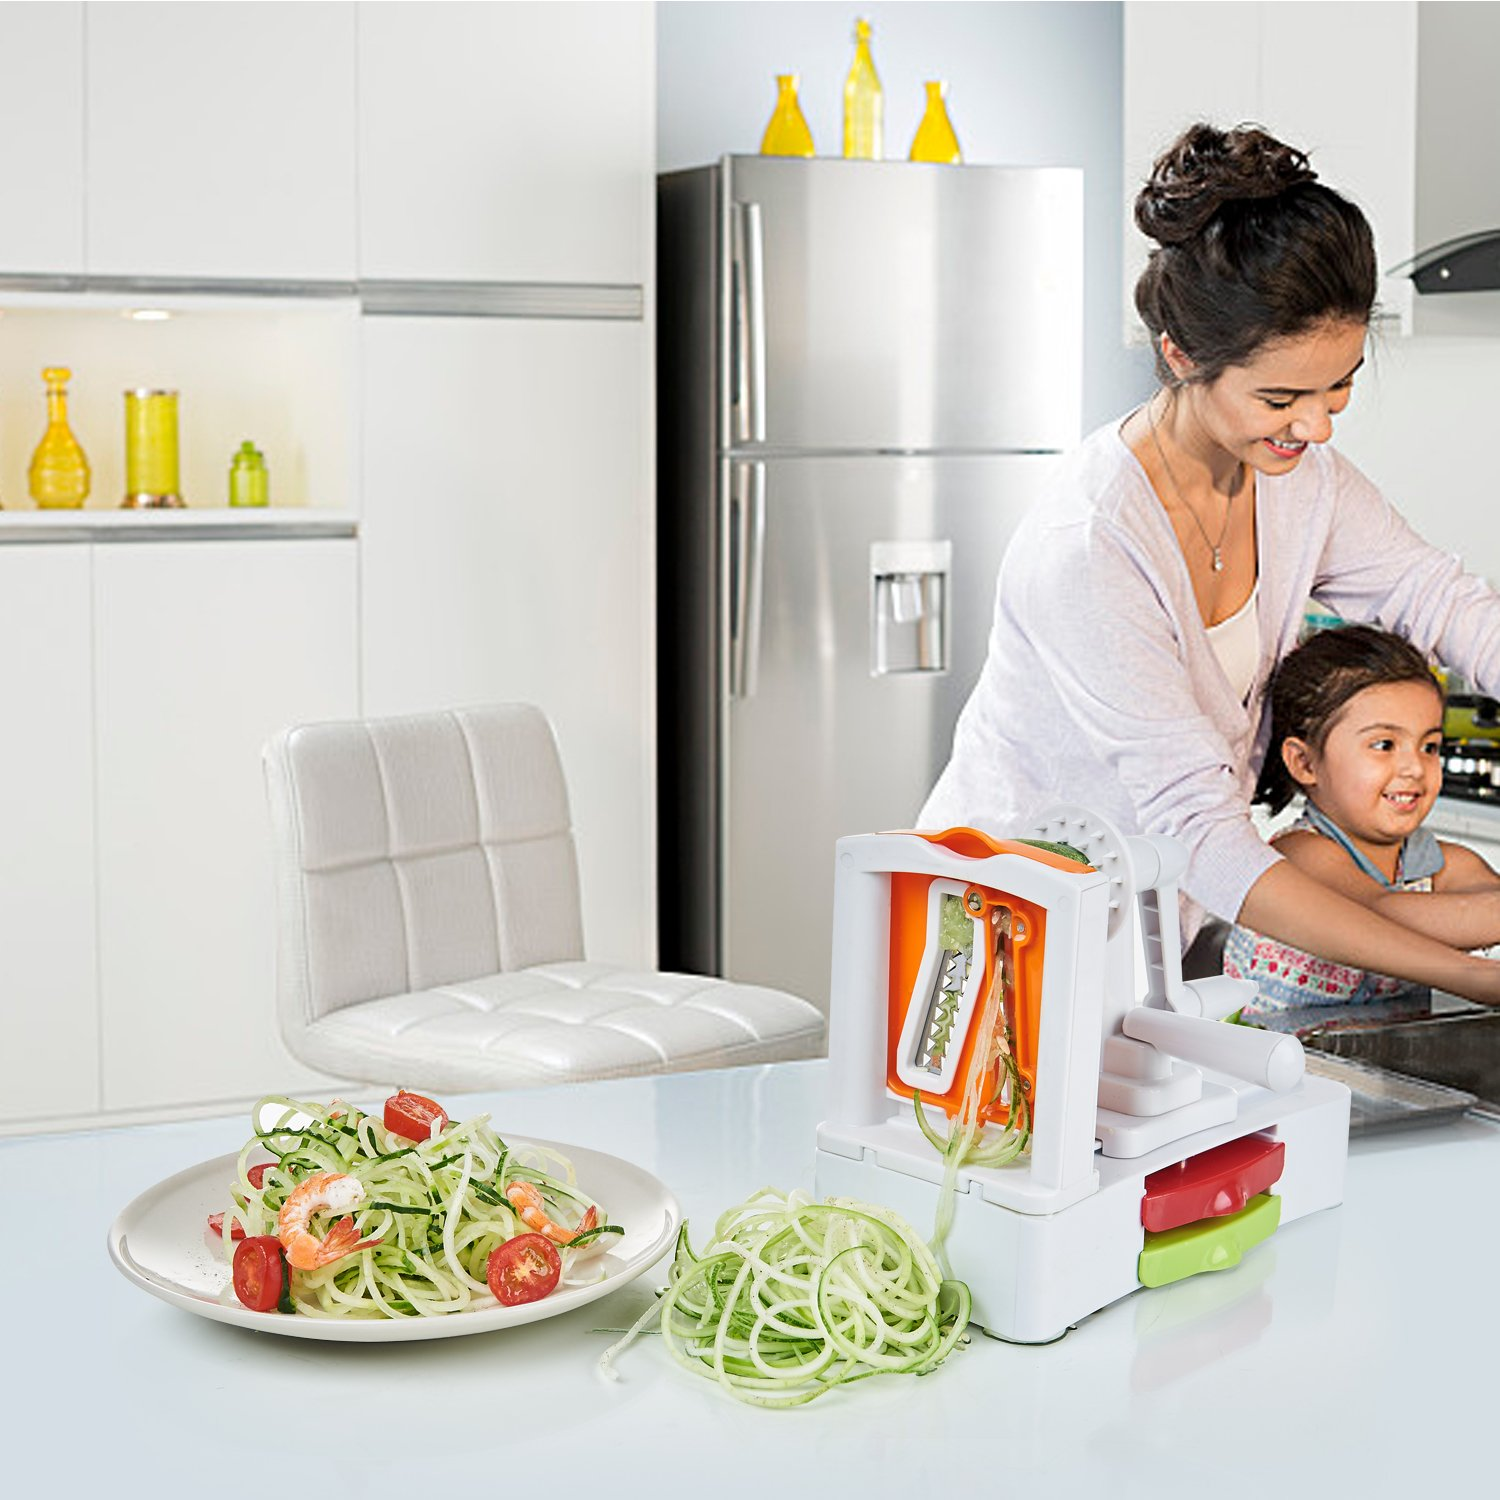 Spiralizer Vegetable Slicer - 5-Blade Veggie Spiral Slicer with Powerful Suction Base, Fit Kitchen Veggie Pasta Salad Creations, Cut and Shred Zucchini Zoodles, Cucumbers, Onions, BPA Free